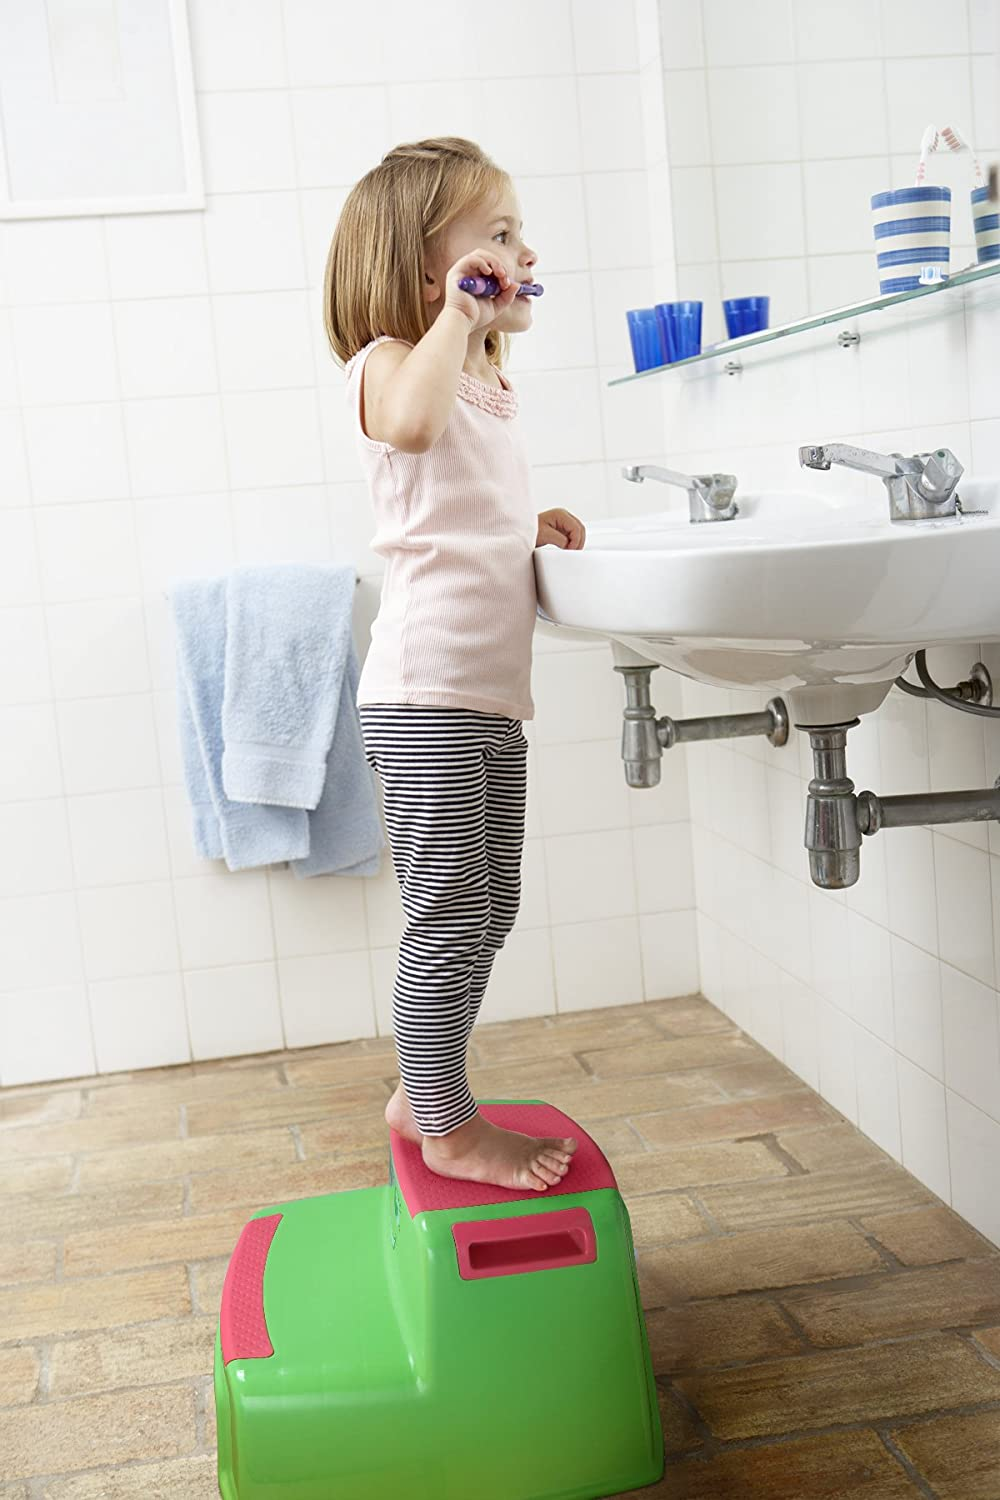 Hot Pink Girls- By Toddle doo Lightweight Cute Design for Use in Bathroom and Kitchen sink Toddlers Potty Step Stool for Toilet Training Dual Height Two-Step Stairs Stool Step Stools for Kids